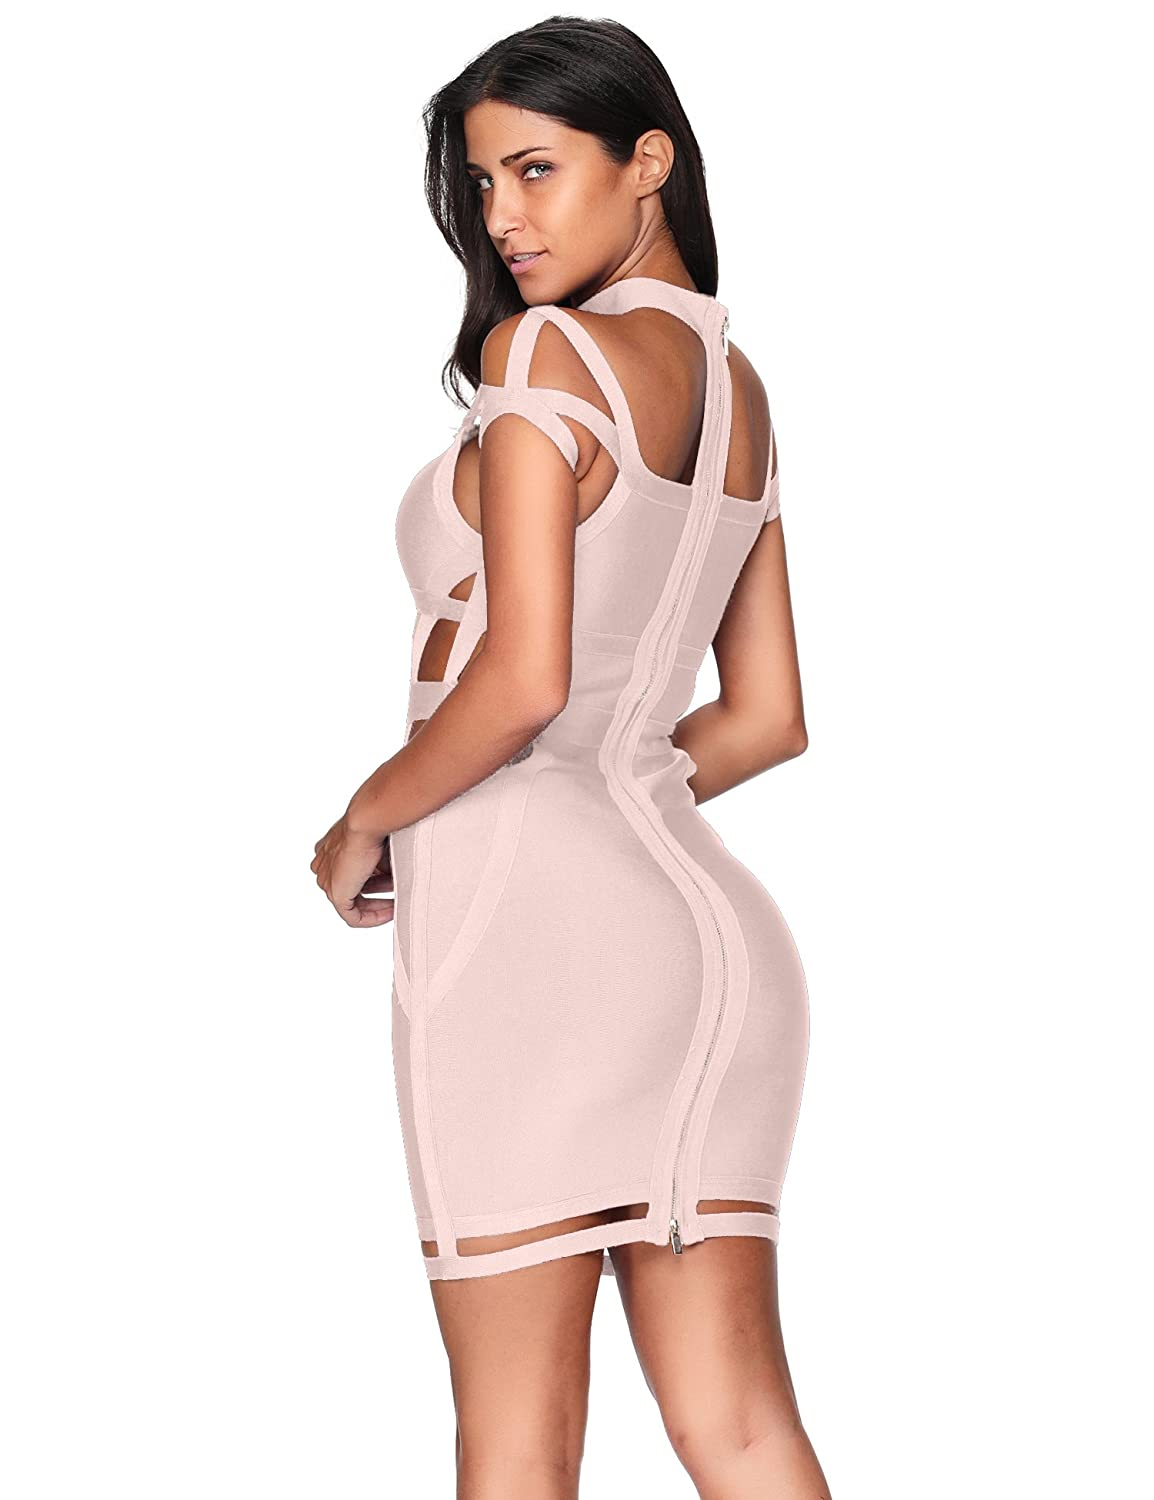 21286b7bb865 Amazon.com: Meilun Women Rayon Off The Shoulder Cut Out Bandage Bodycon  Party Dress: Clothing